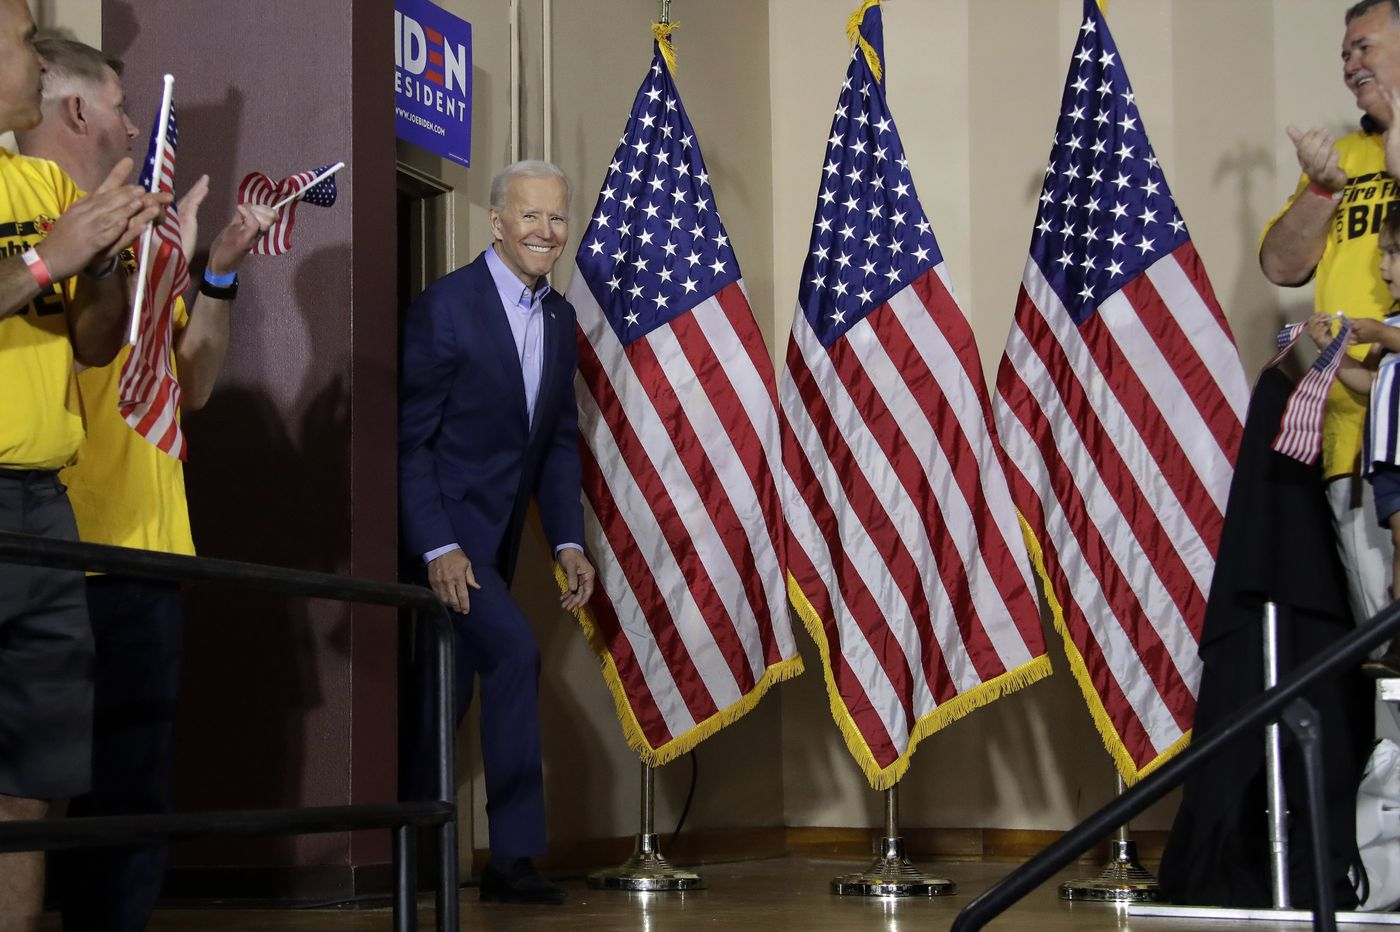 With an opening rally in Pittsburgh, Joe Biden signals that Pennsylvania is vital to his campaign